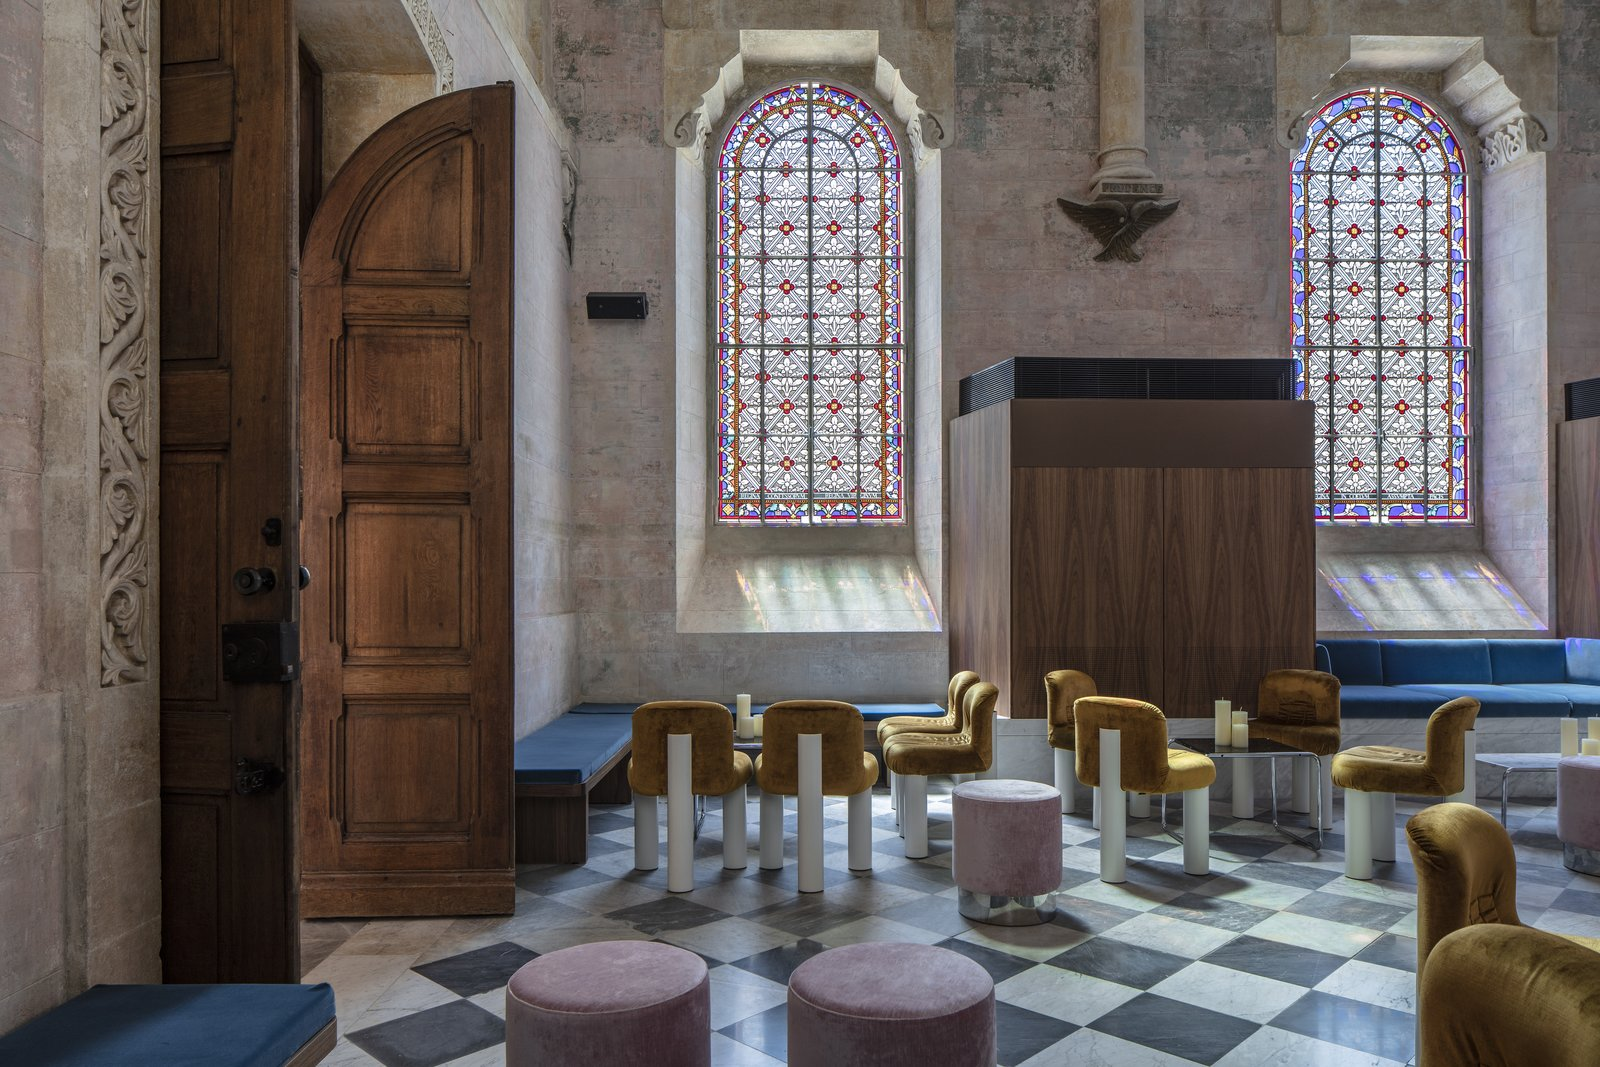 Living Room, Chair, Table, Stools, and Bench Gorgeous golden-yellow Cini Boeri Botolo chairs pair perfectly with the chapel's neutral palette and high ceilings.  Jaffa Hotel from John Pawson Turns an Old Hospital and Convent Into a Luxe Hotel in Israel